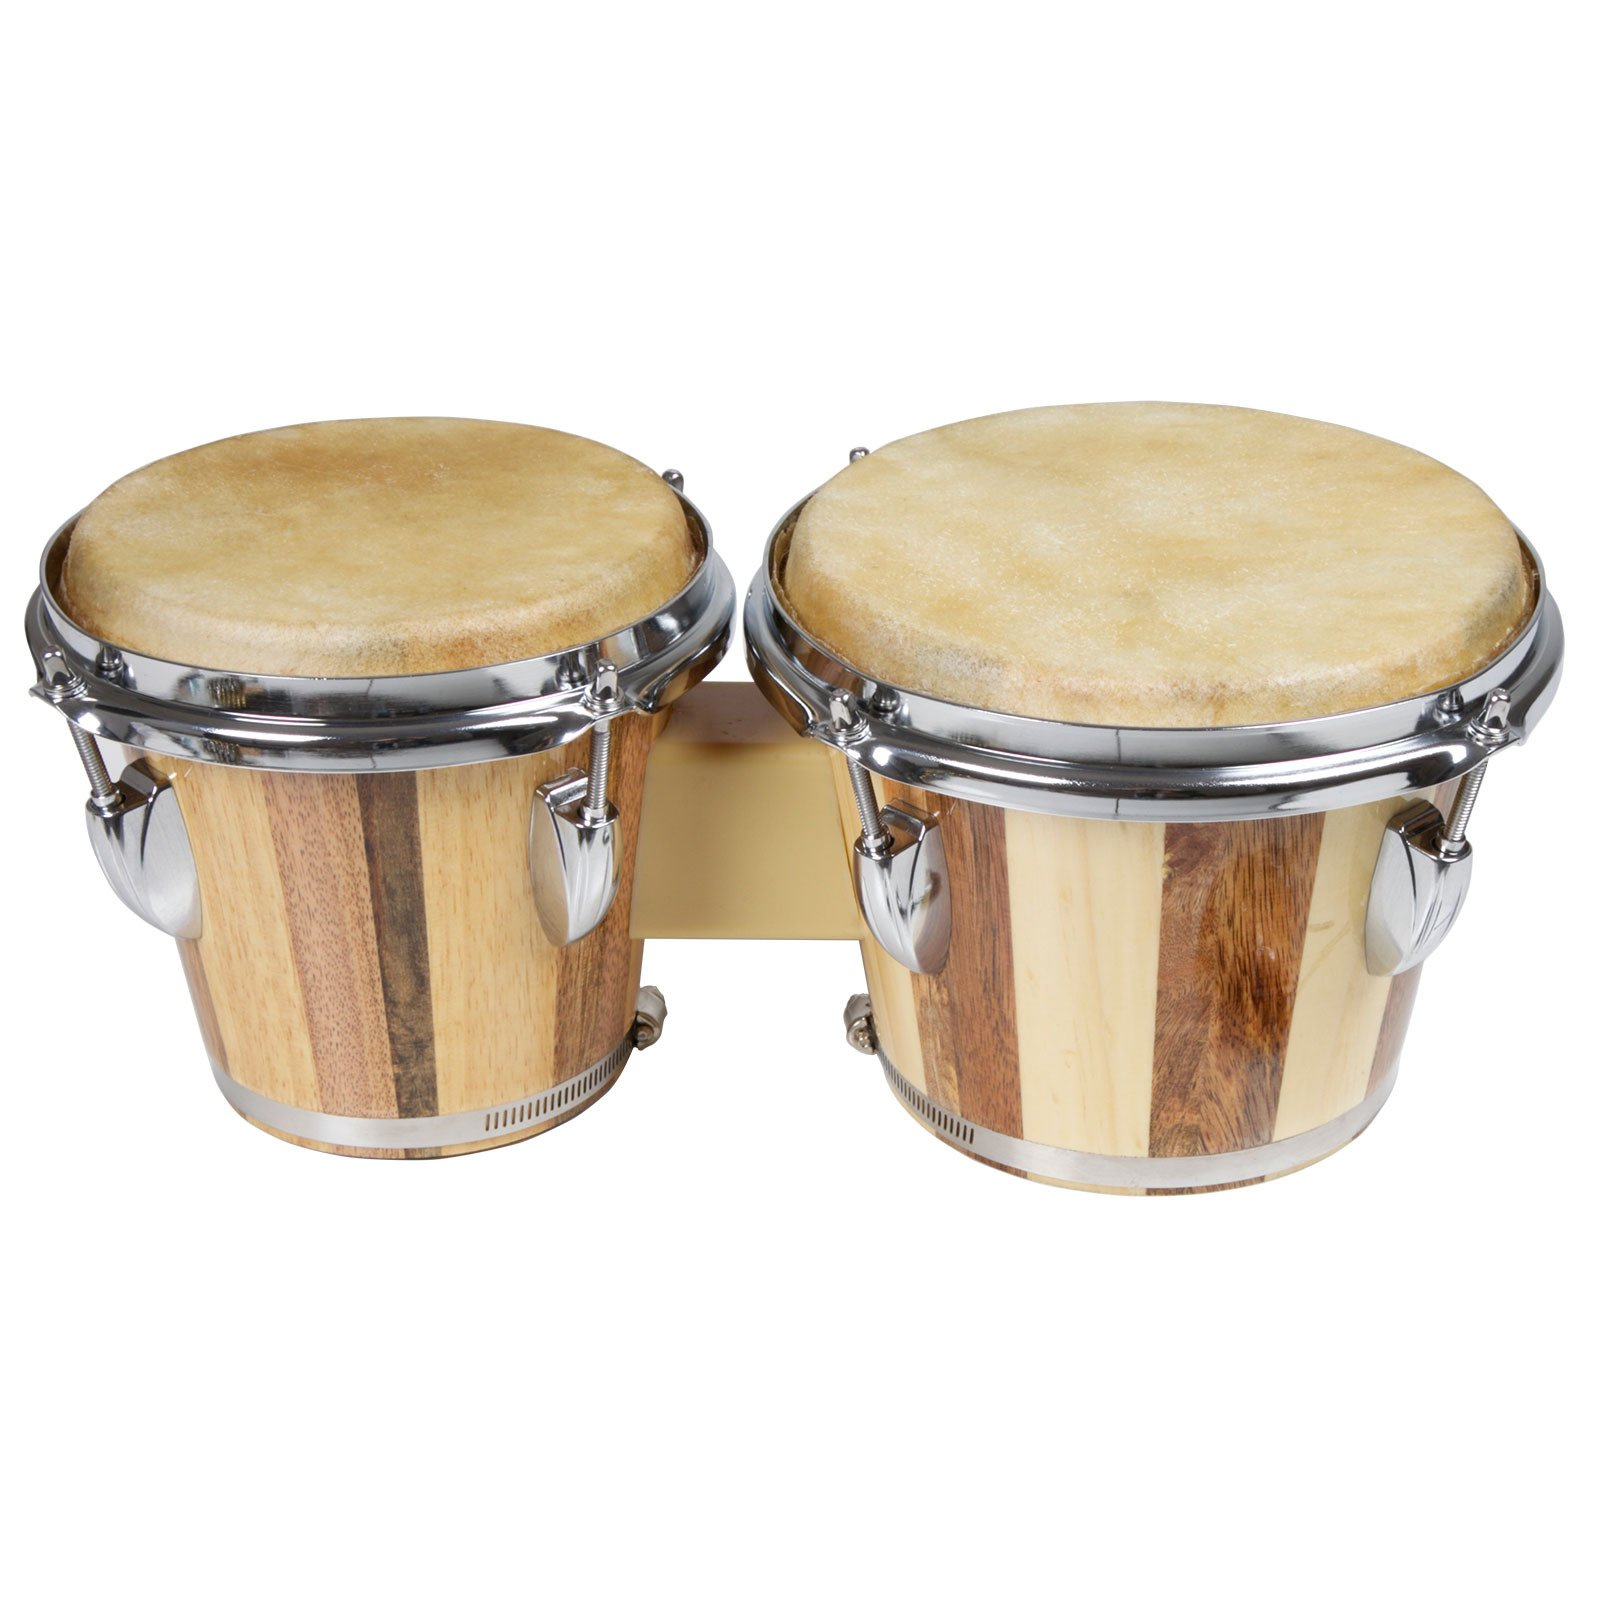 X8 Tunable Two-tone Bongos by X8 Drums